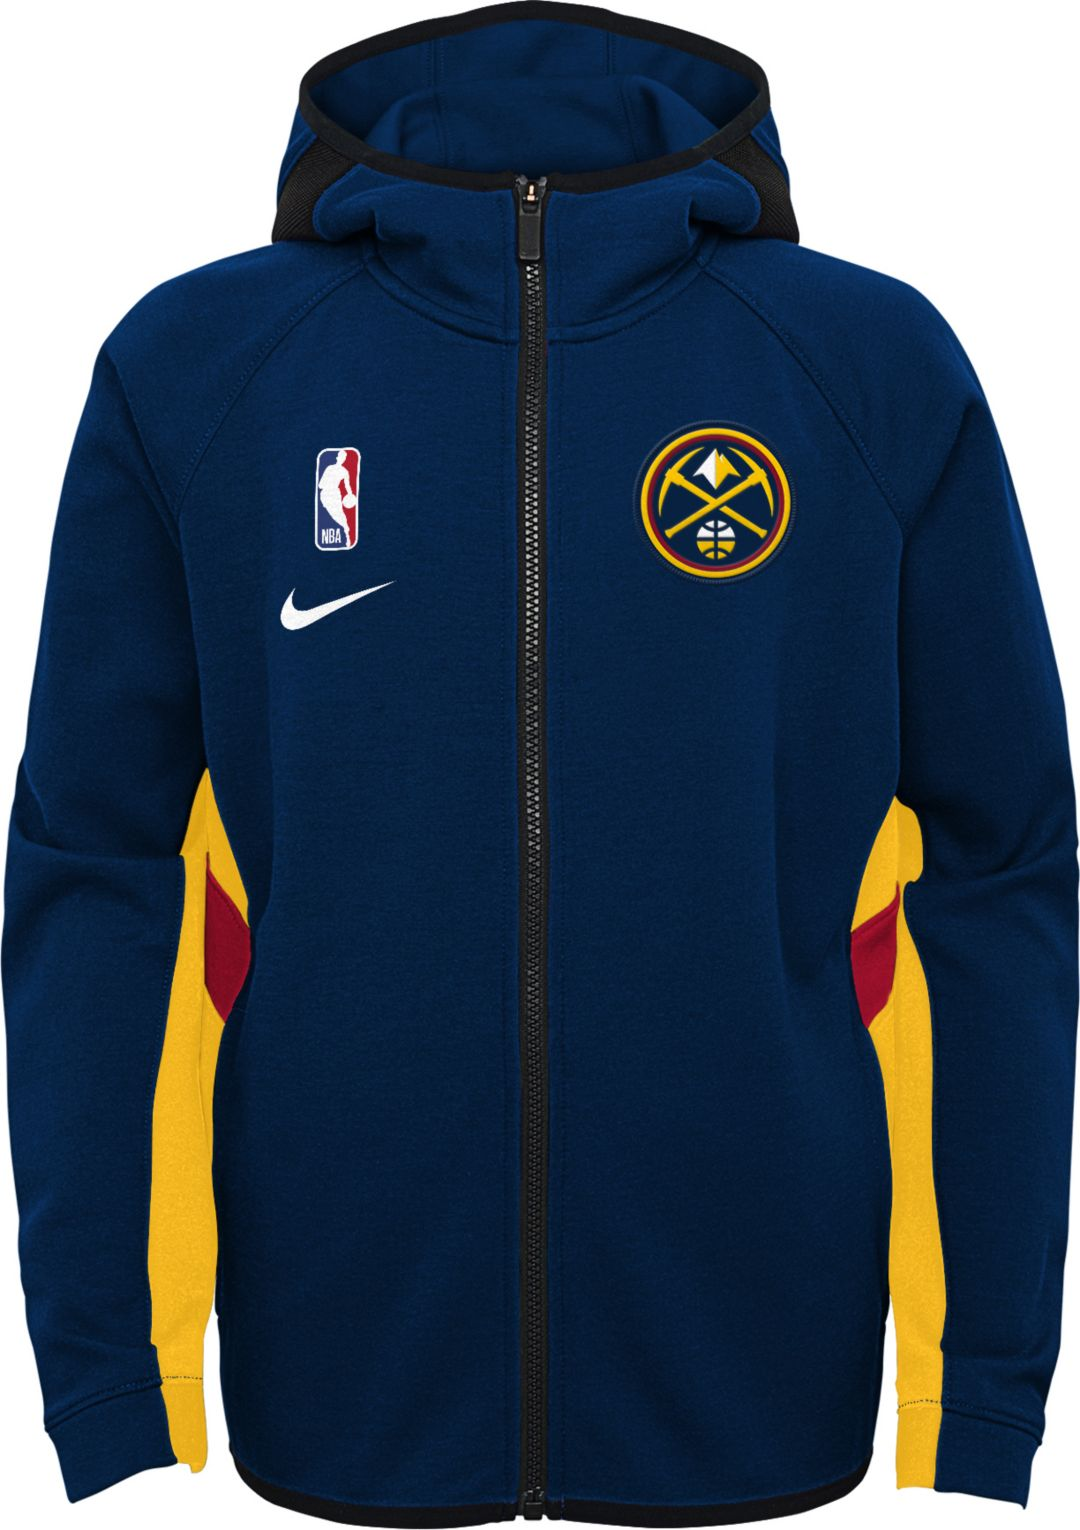 Nike Youth Denver Nuggets On Court Therma Flex Showtime Full Zip Hoodie